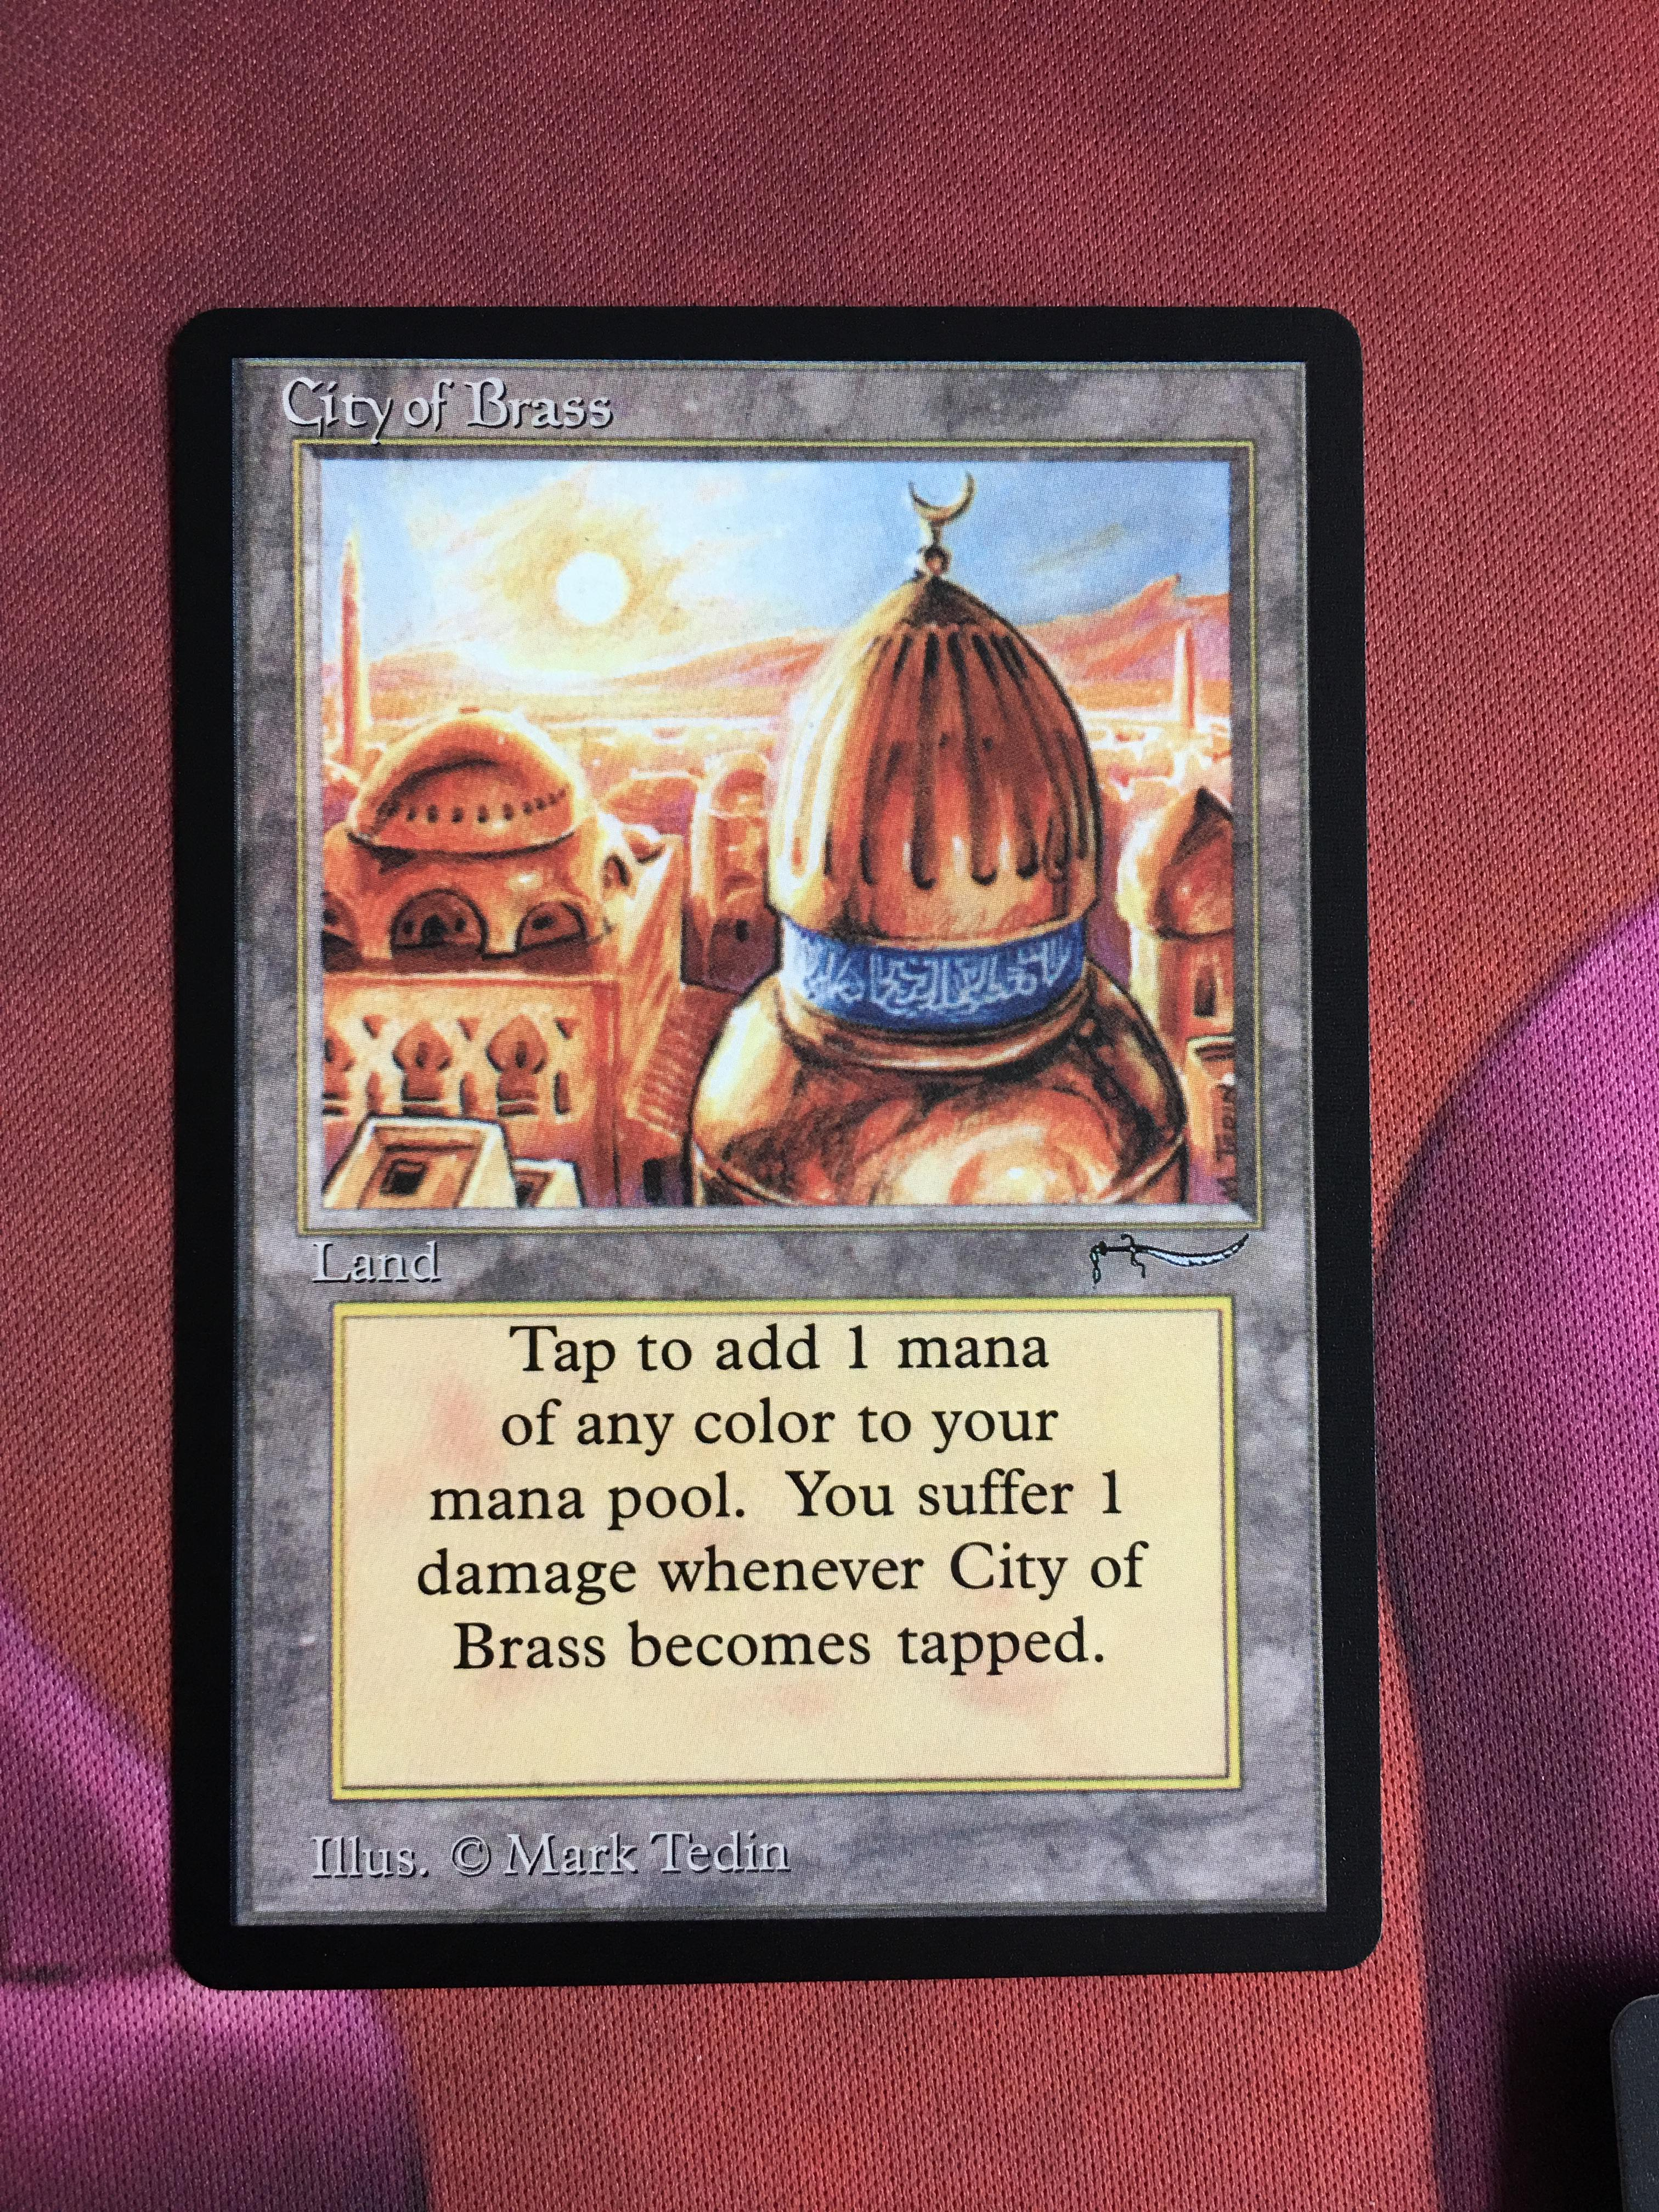 City Of Brass Arabian Nights Magician ProxyKing 8.0 VIP The Proxy Mtg Proxy Cards To Gathering Every Single Mg Card.